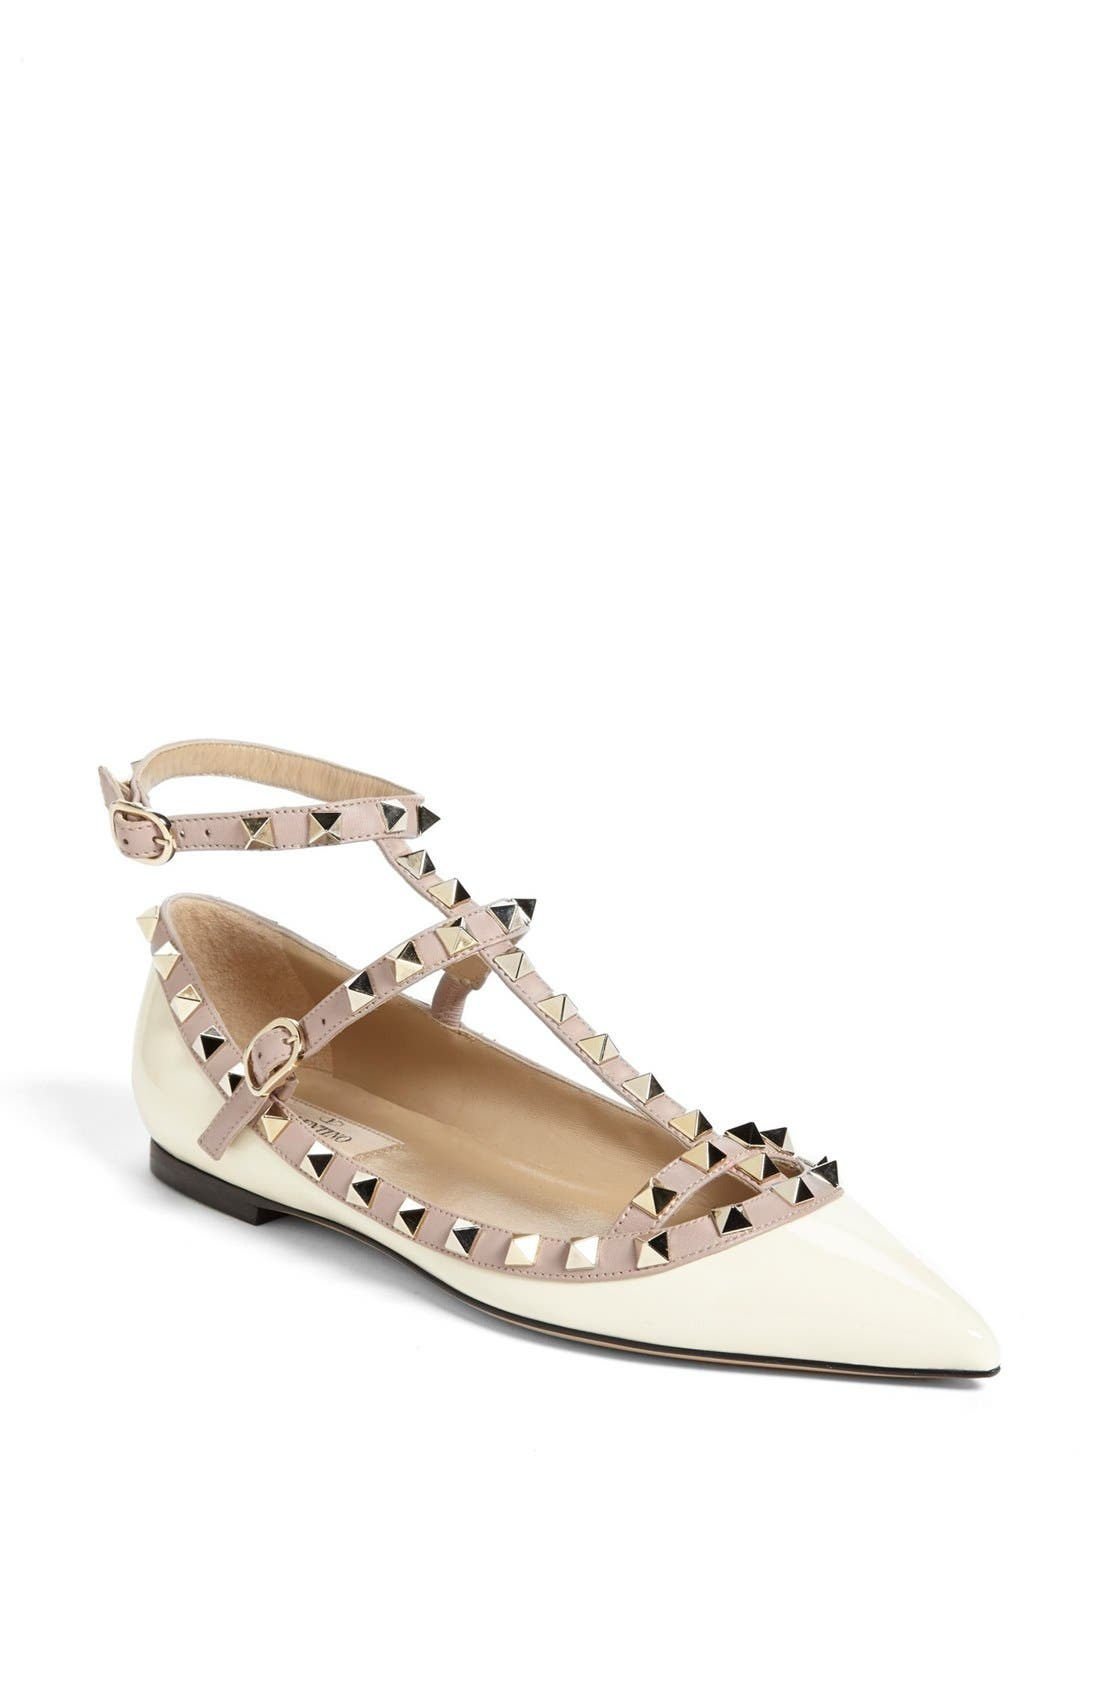 Main Image - Valentino 'Rockstud' Double Ankle Strap Ballet Flat